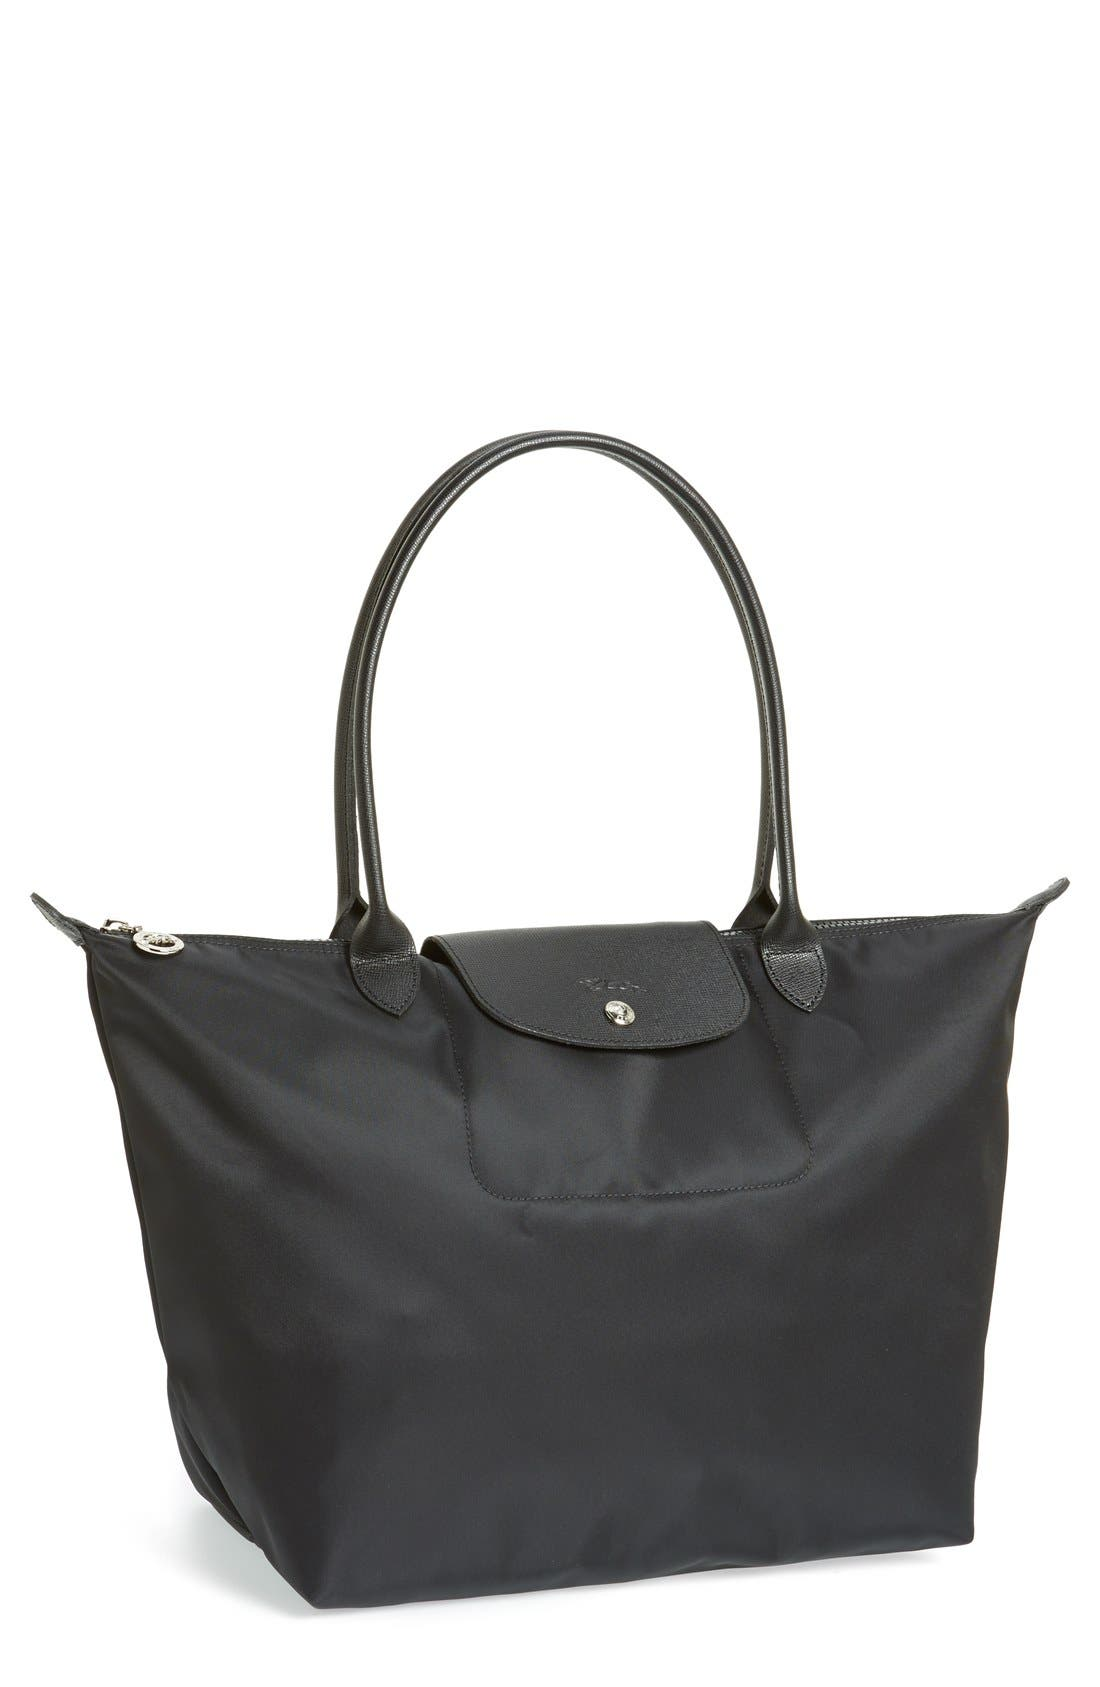 Alternate Image 1 Selected - Longchamp 'Large Le Pliage Neo' Nylon Tote